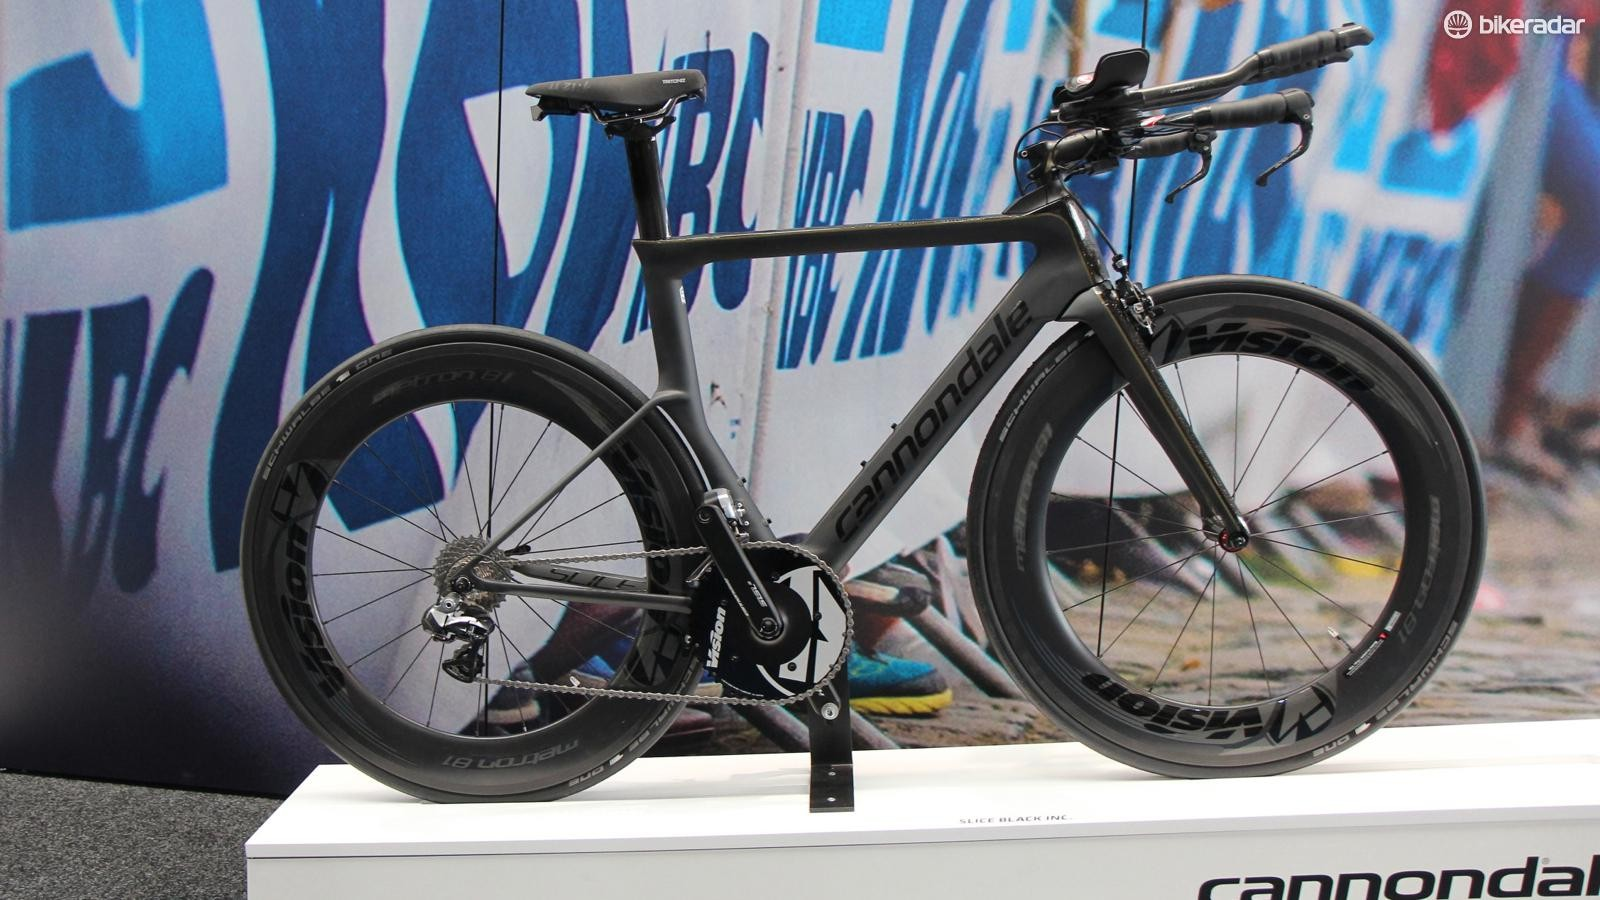 Brand new for 2015, the Cannondale Slice kicks off our TT bike gallery. Skinny shapes mean a claimed frame weight of 1,000 to 1,200g depending on the model